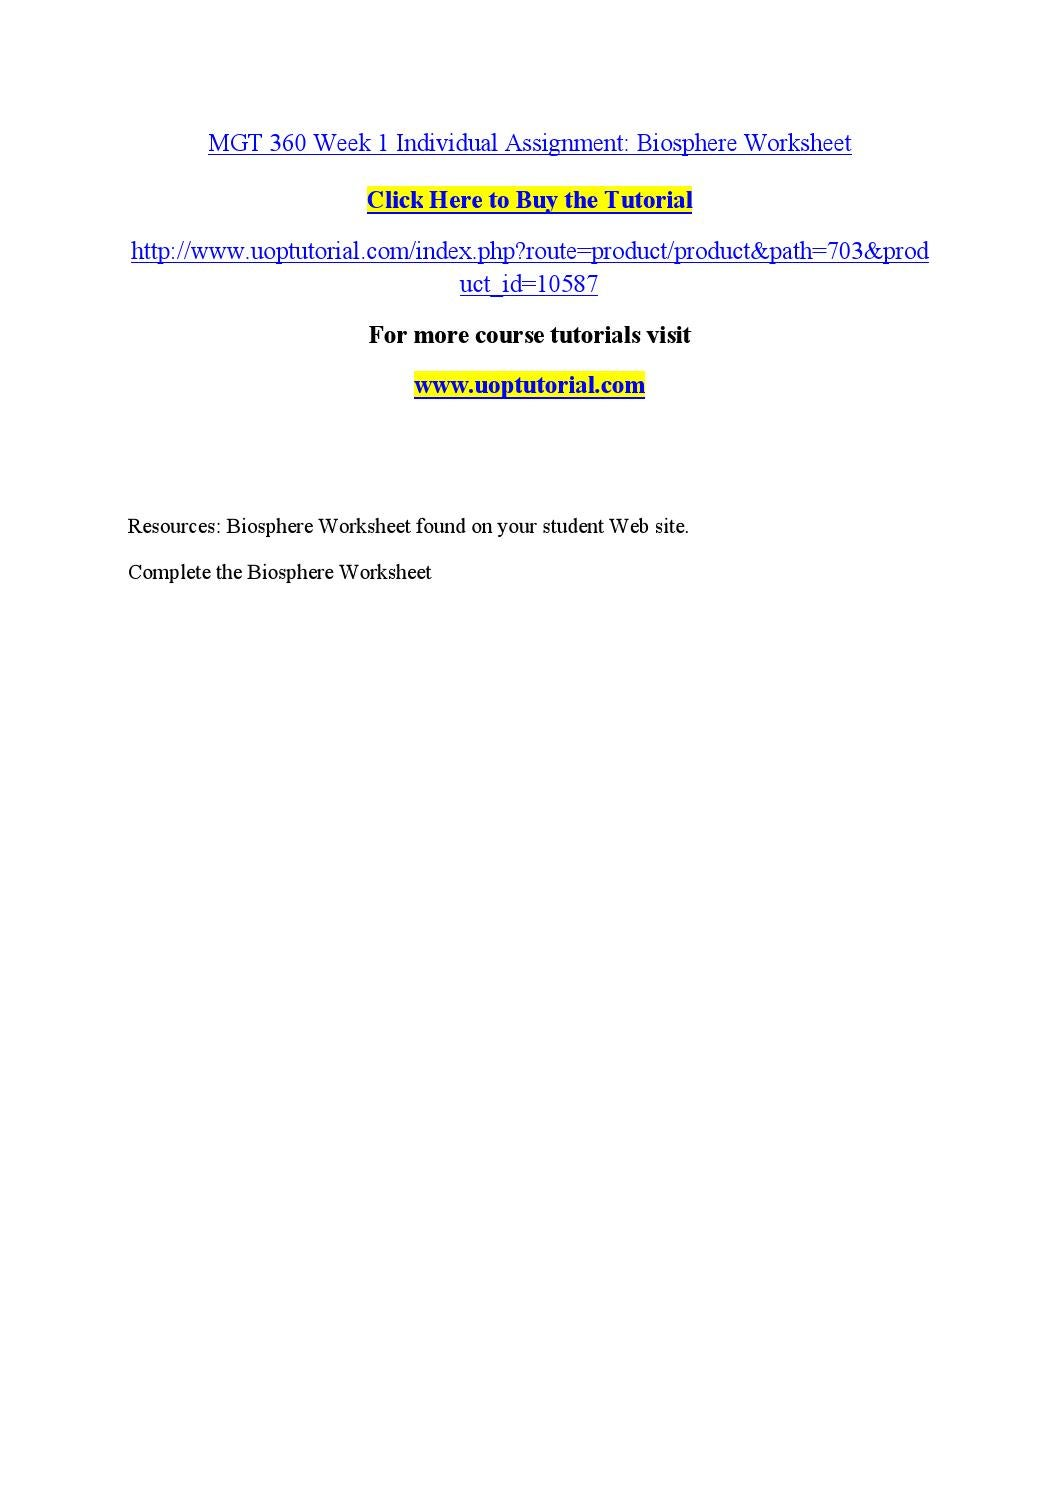 worksheet Biosphere Worksheet mgt 360 week 1 individual assignment biosphere worksheet by manorias1 issuu